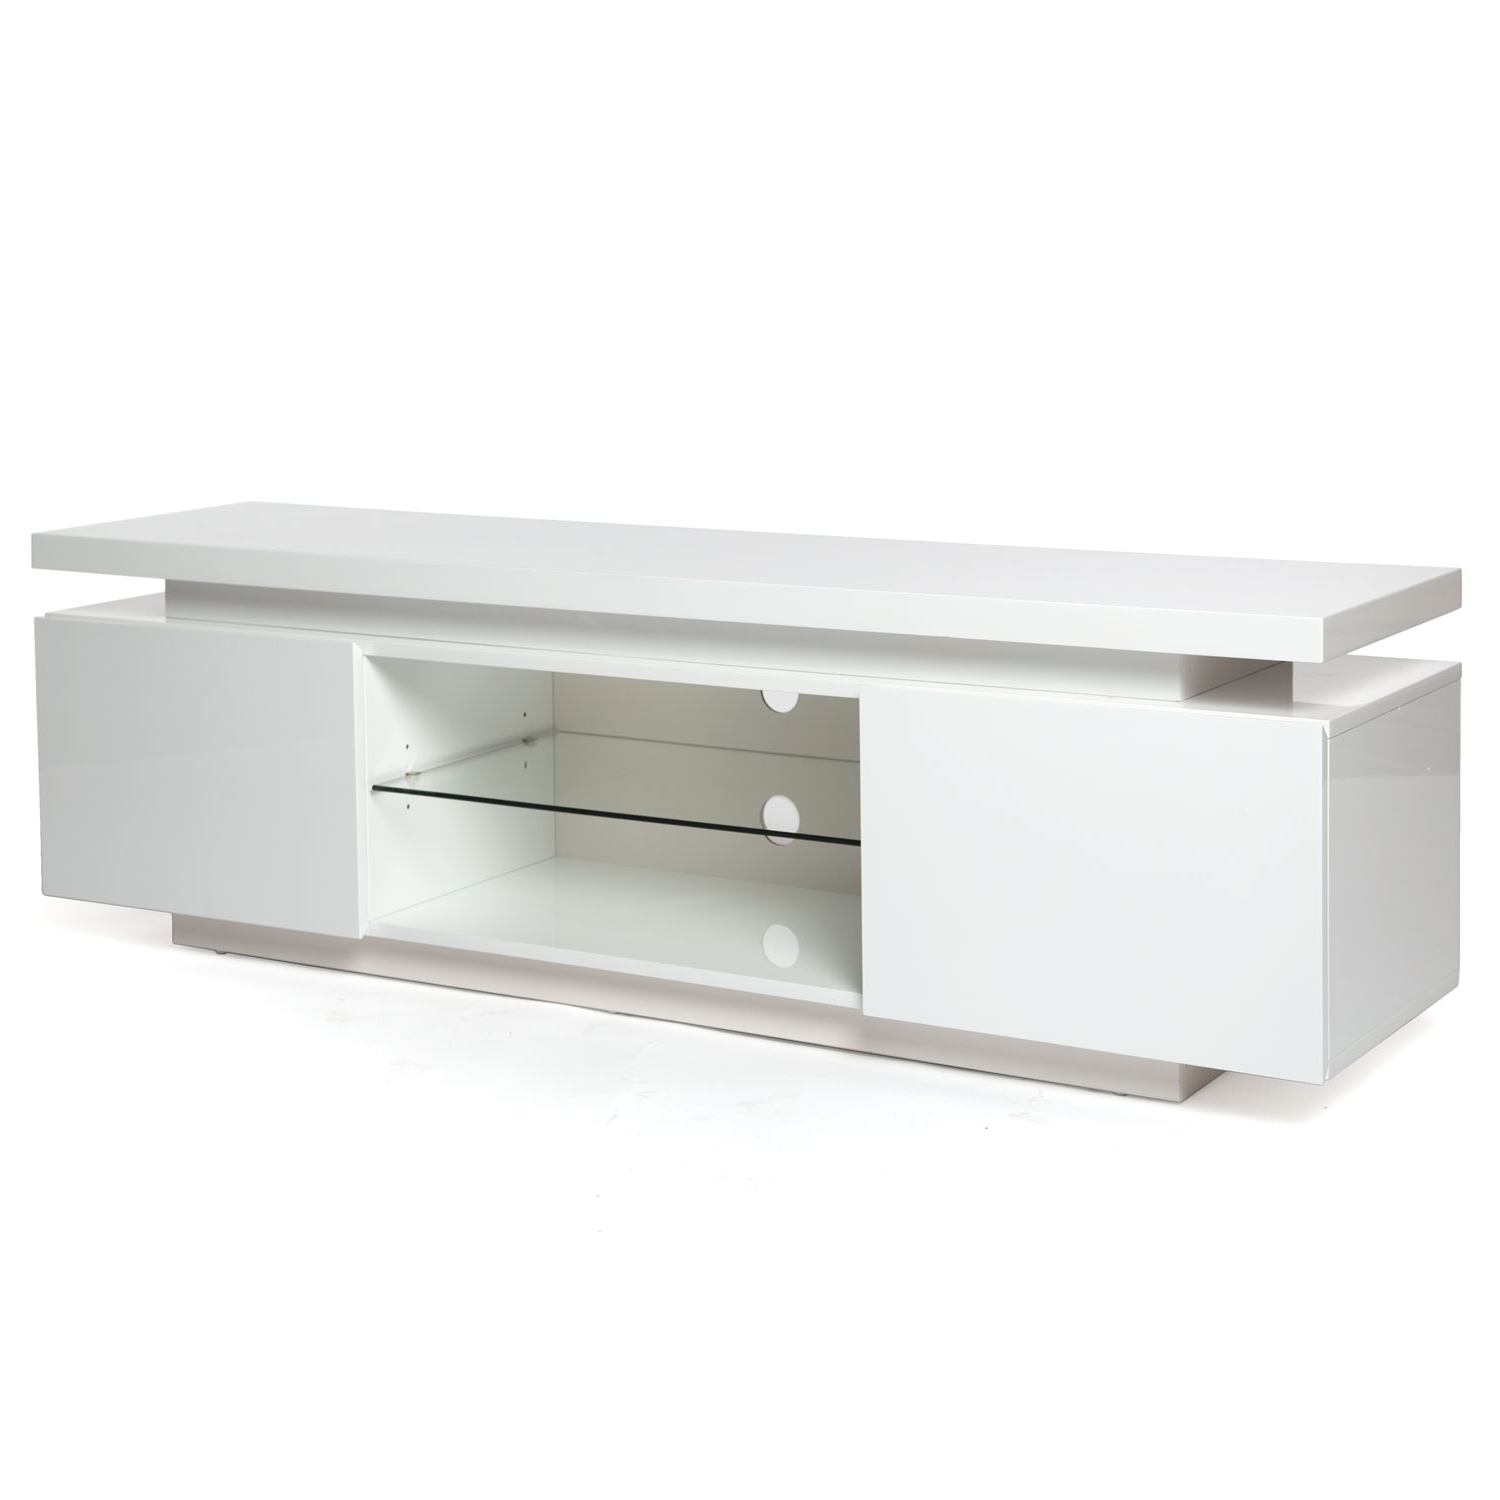 Modern Tv Stand For Vancouver Small Condo Space In Fashionable Tv Tables (View 2 of 20)